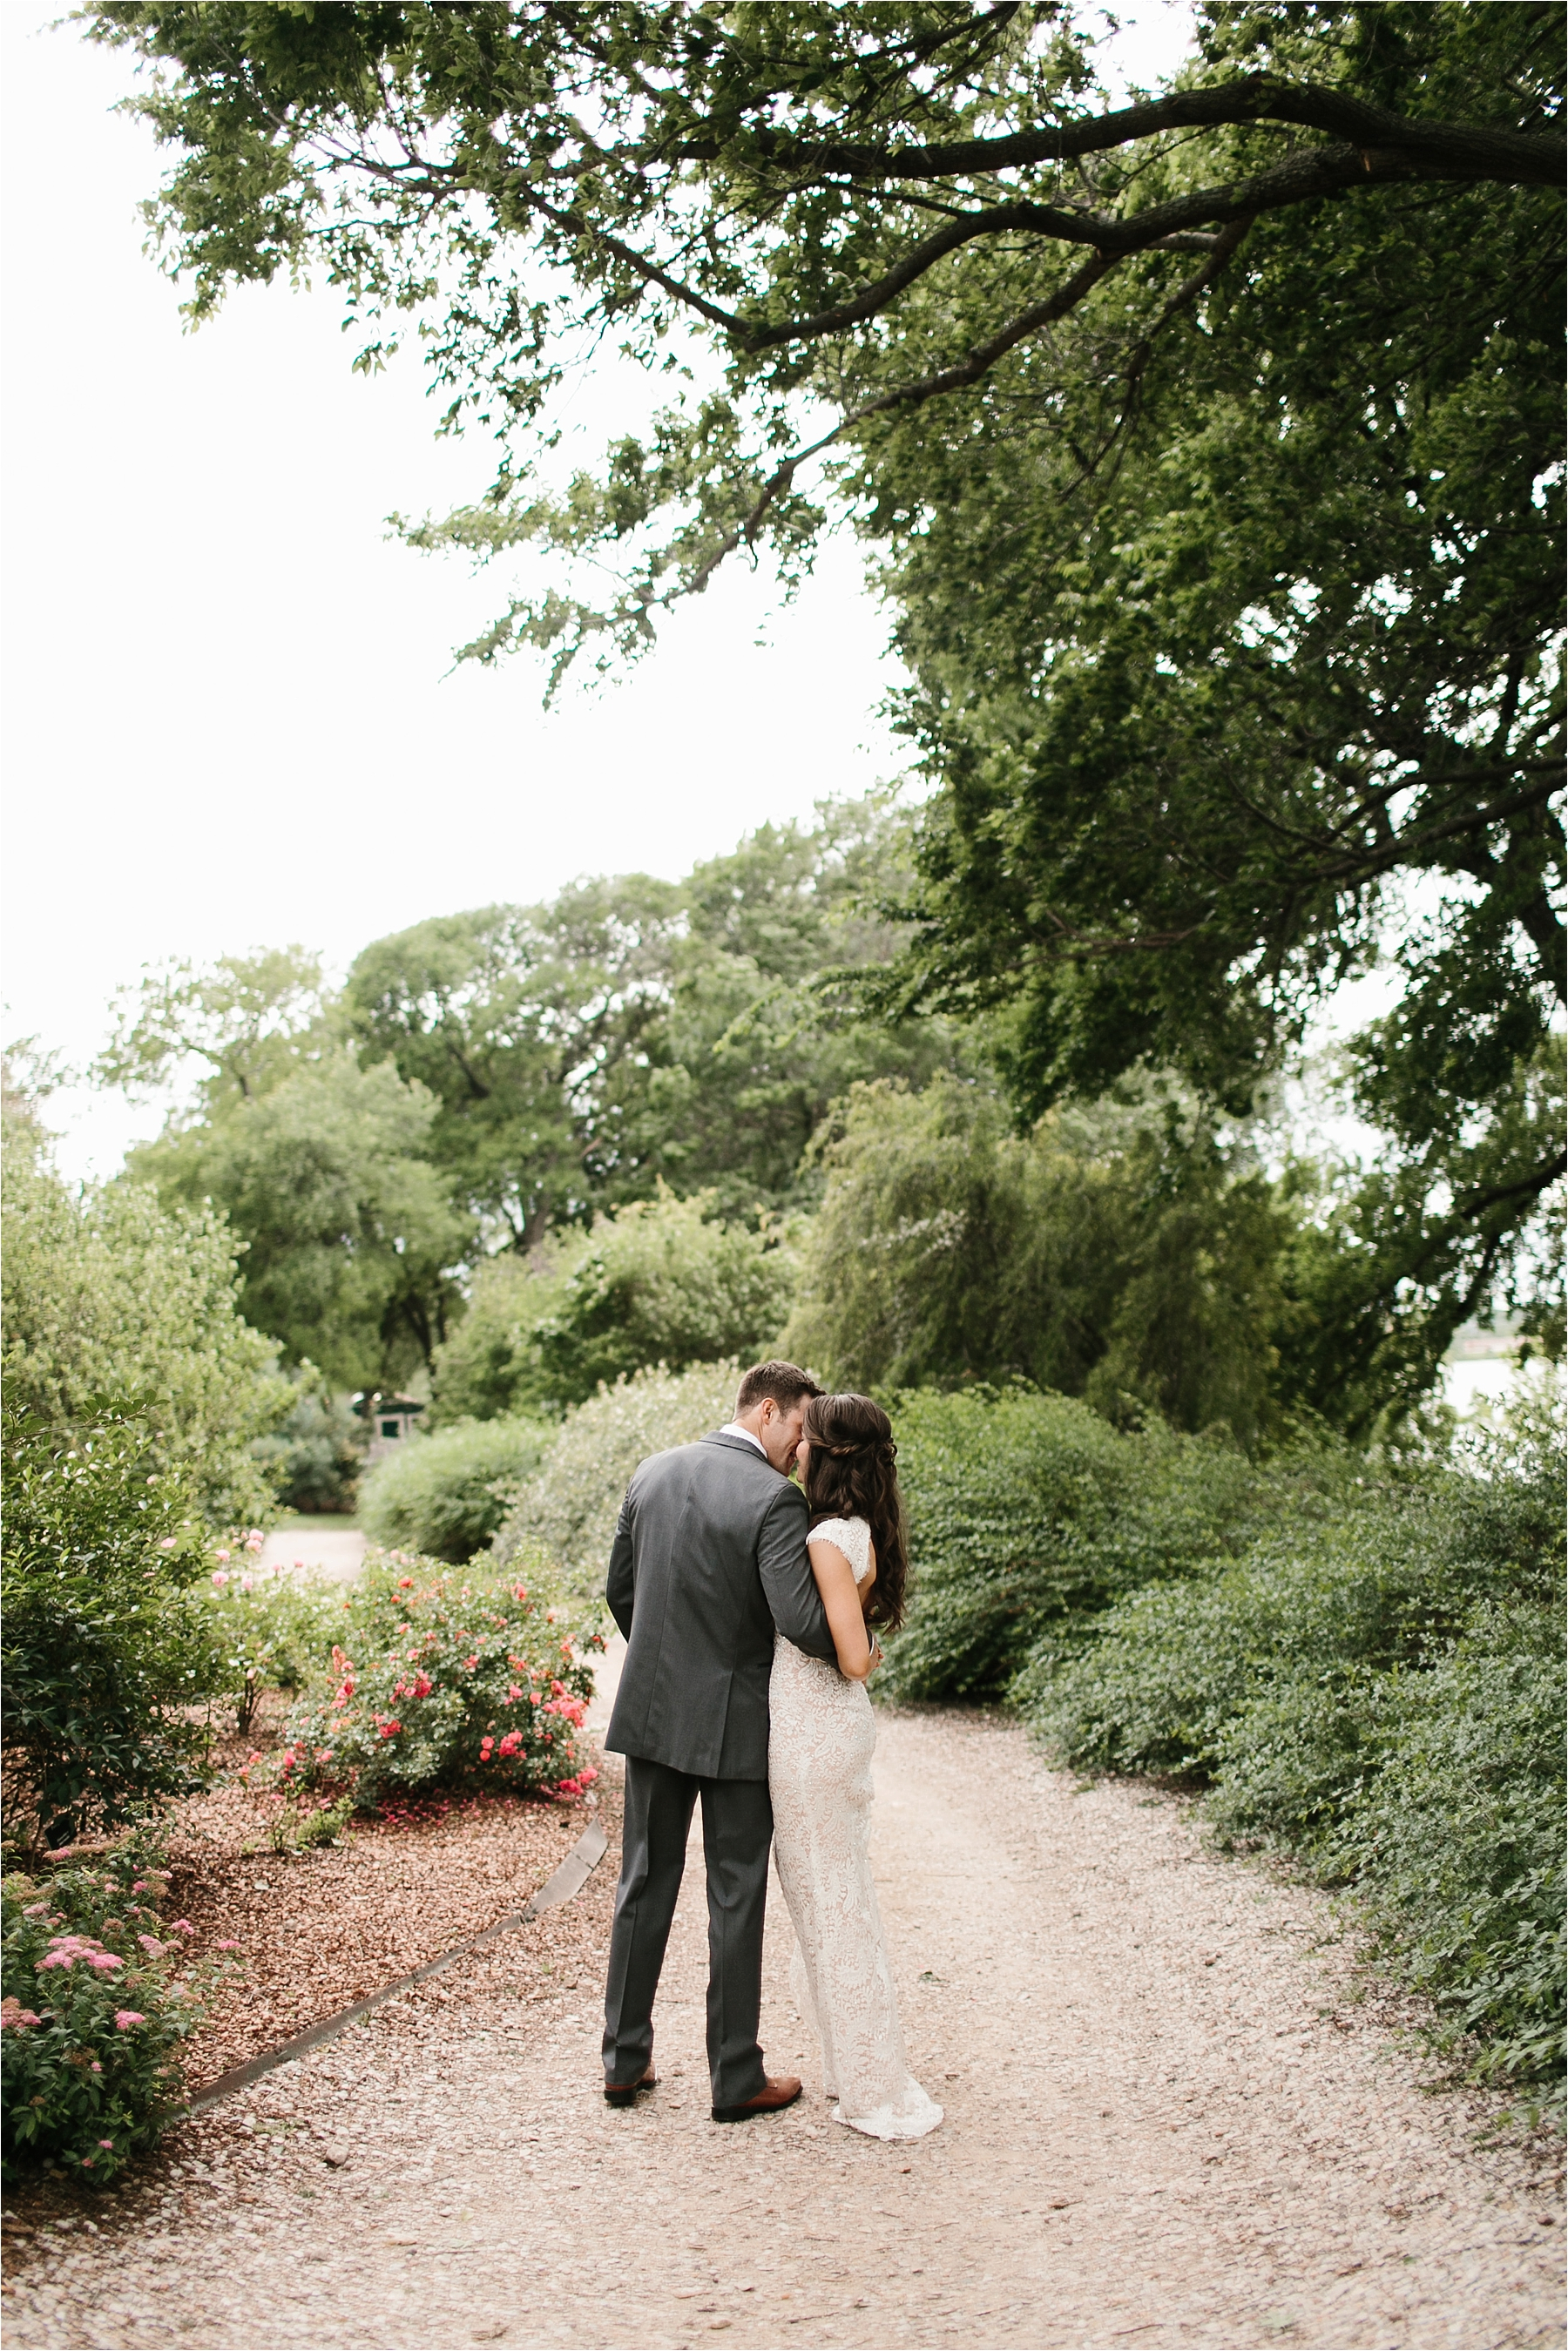 Devyn + Caden __ a Dallas Arboretum Garden Style Wedding by North Texas Wedding Photographer Rachel Meagan Photography __ 037